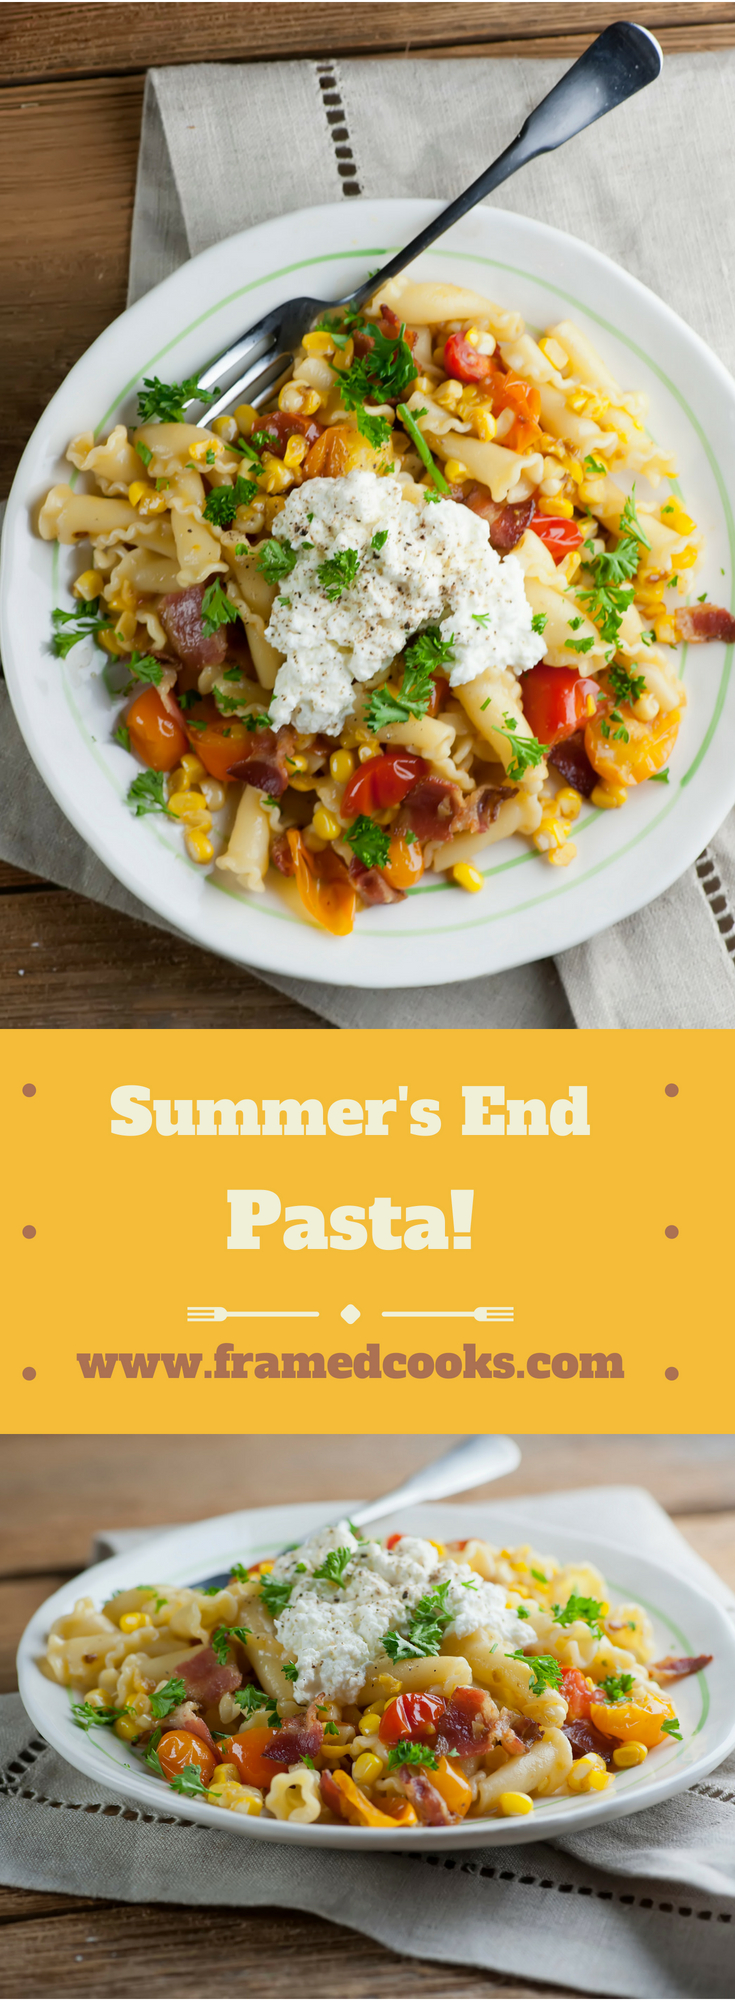 Celebrate the last lazy hazy days with this easy recipe for summer's end pasta, filled summer vegetable flavors of fresh local tomatoes, corn and herbs!